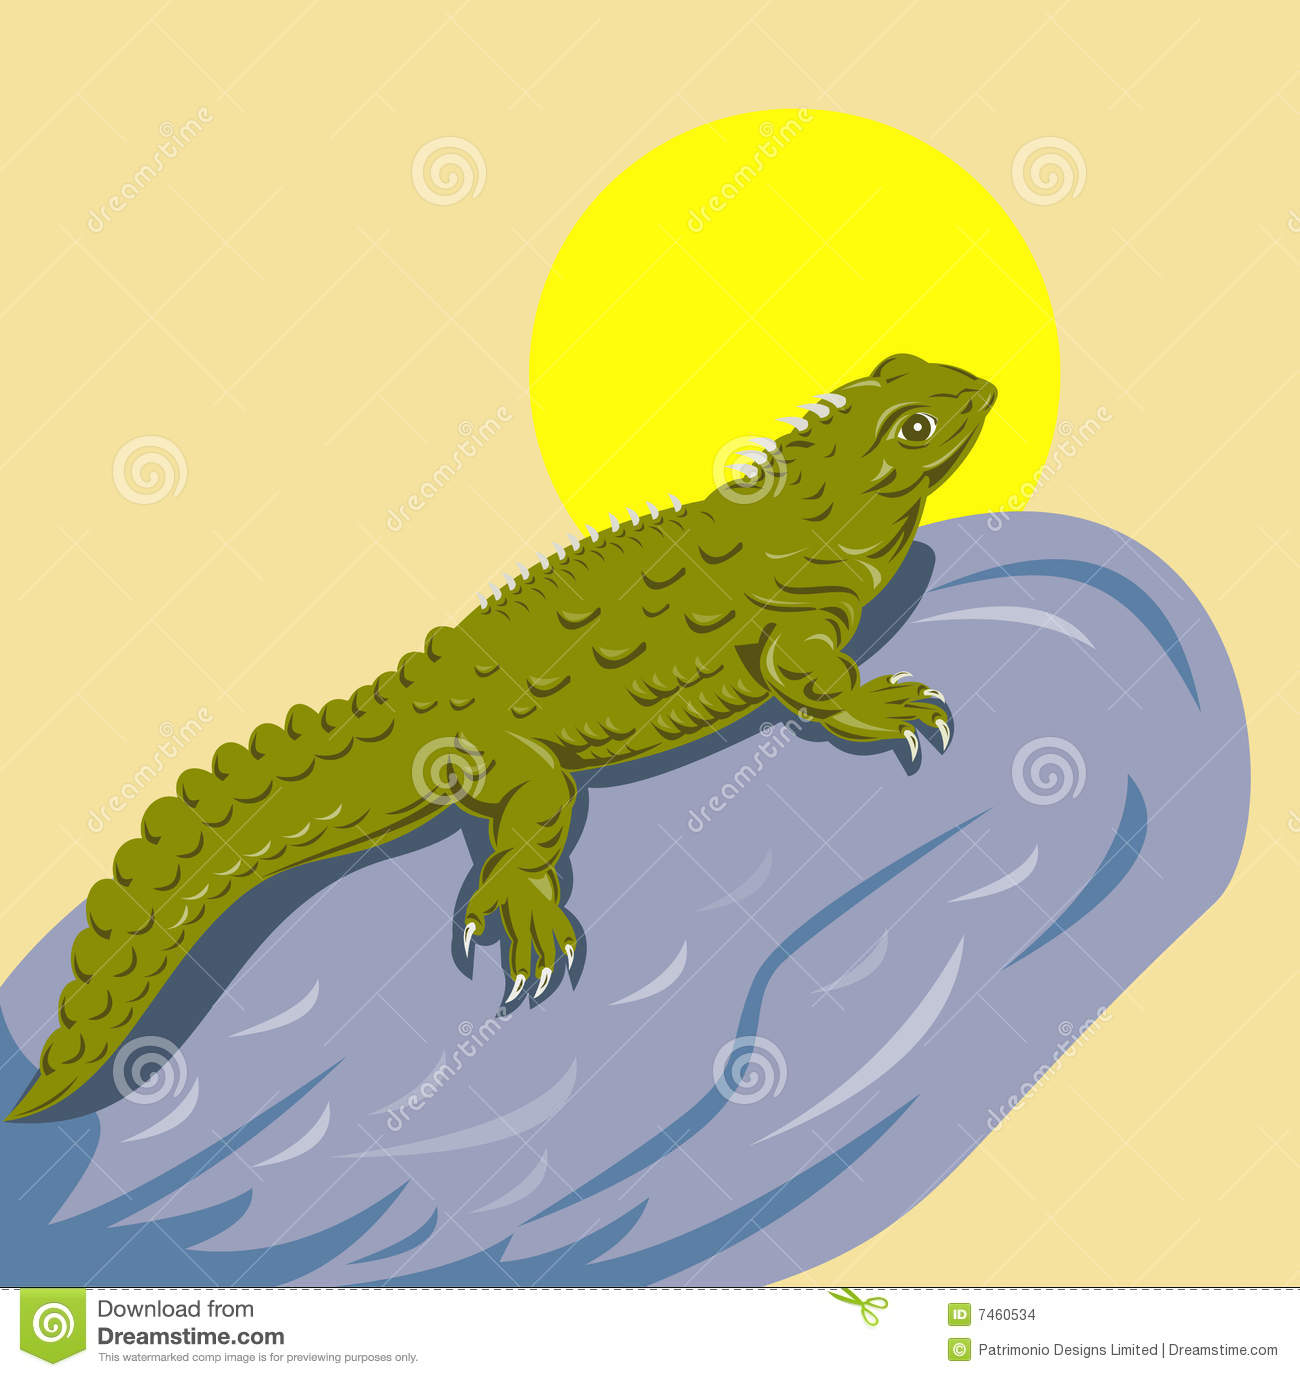 Tuatara clipart #19, Download drawings